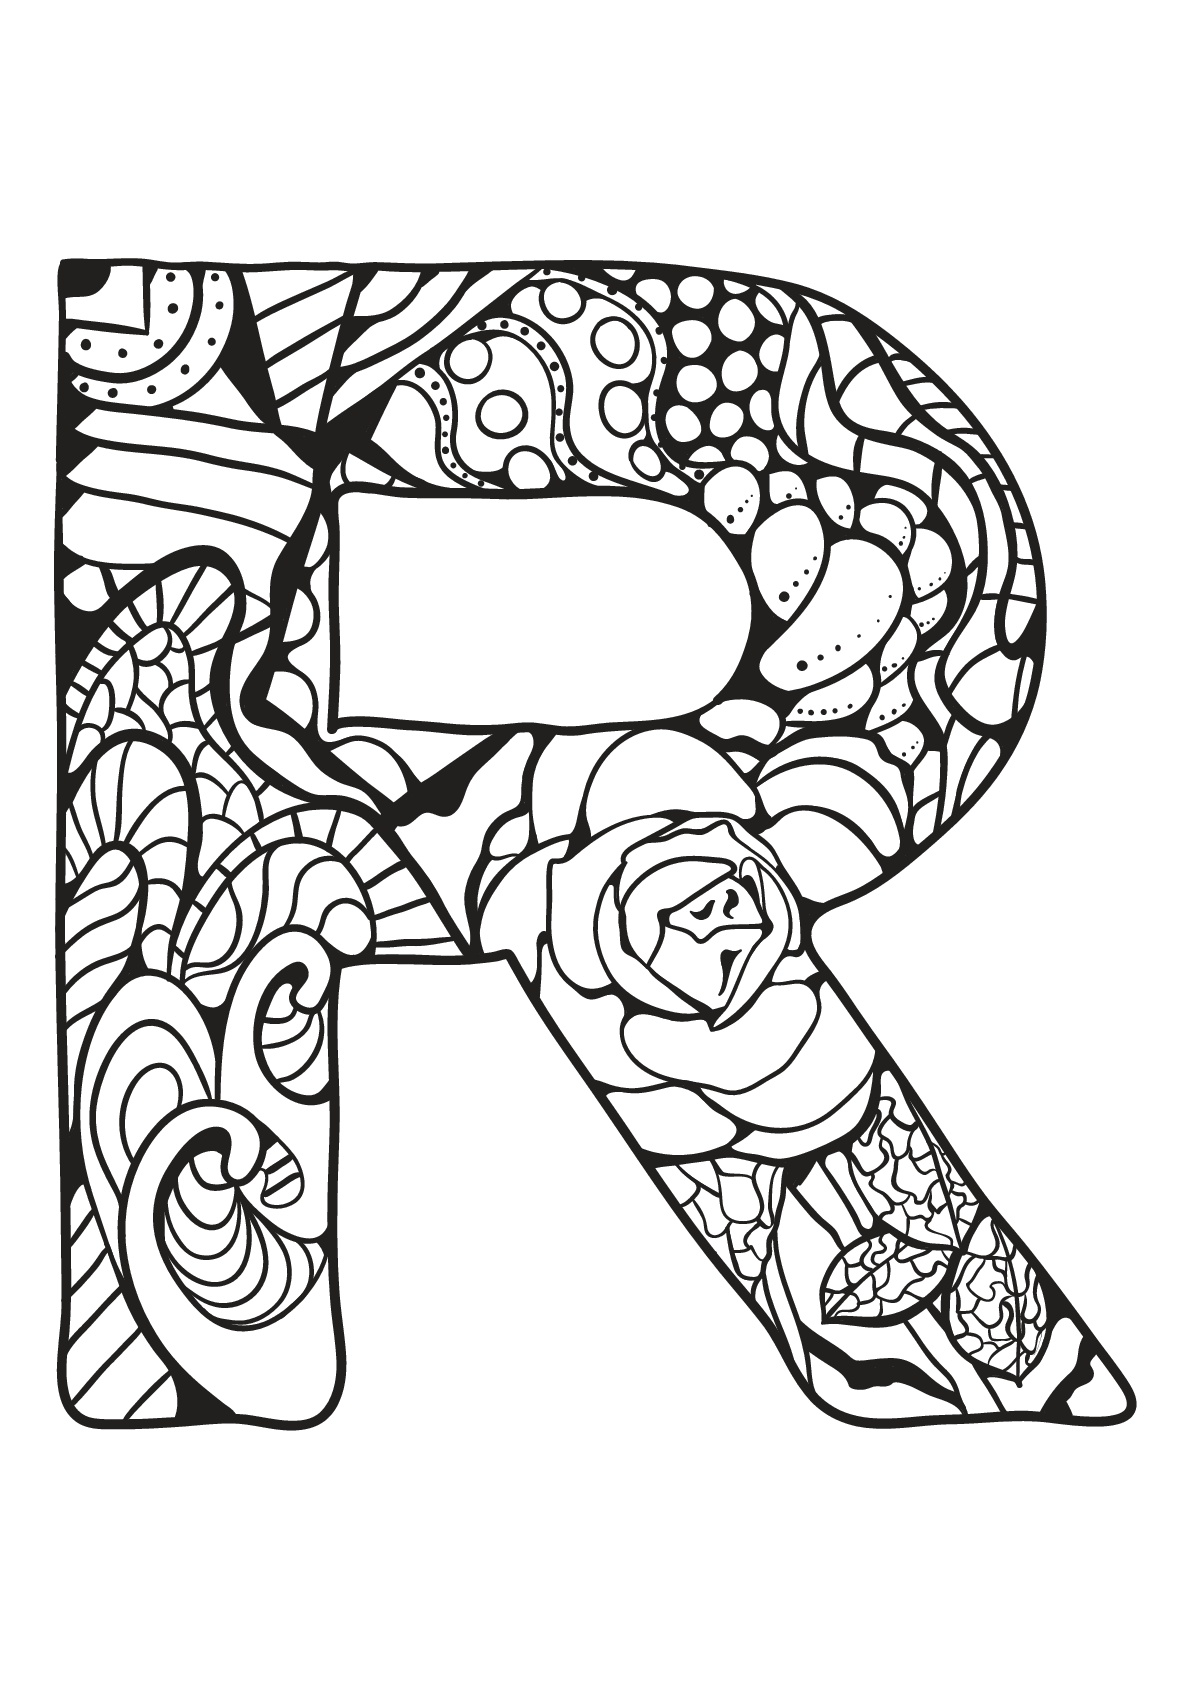 Alphabet To Color For Kids Alphabet Kids Coloring Pages